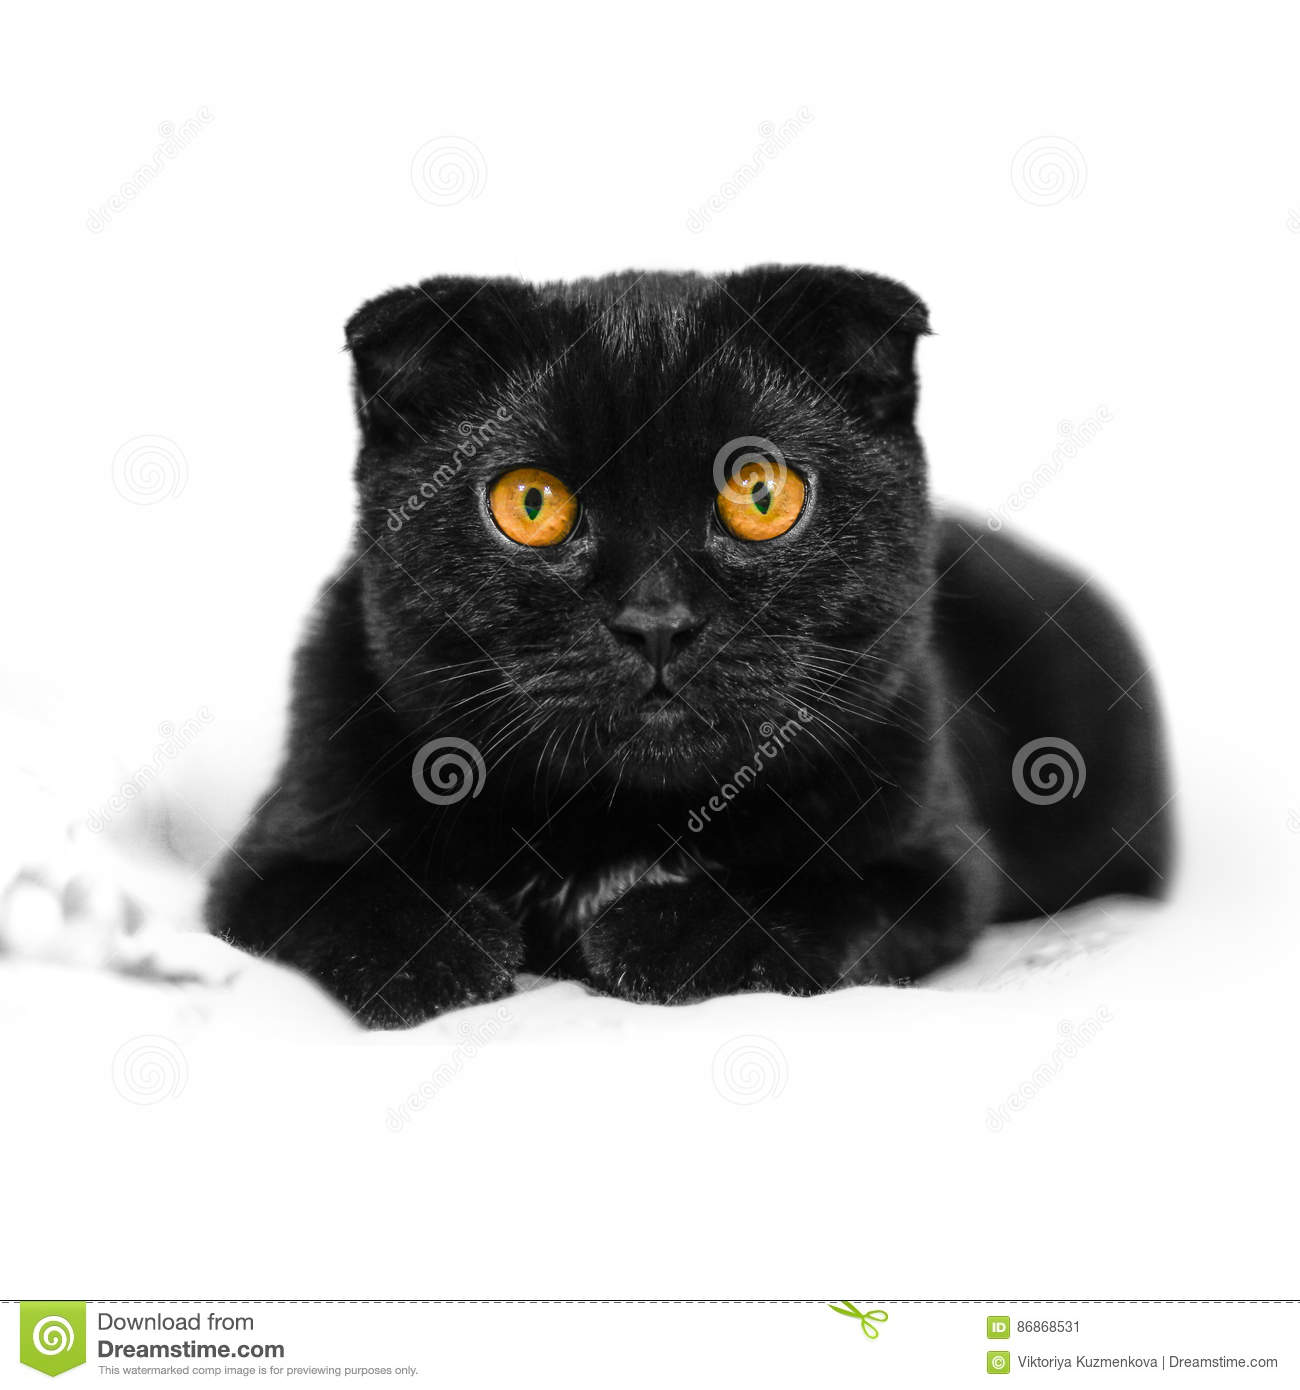 Close-up serious black Cat with Yellow Eyes in Dark. Face black